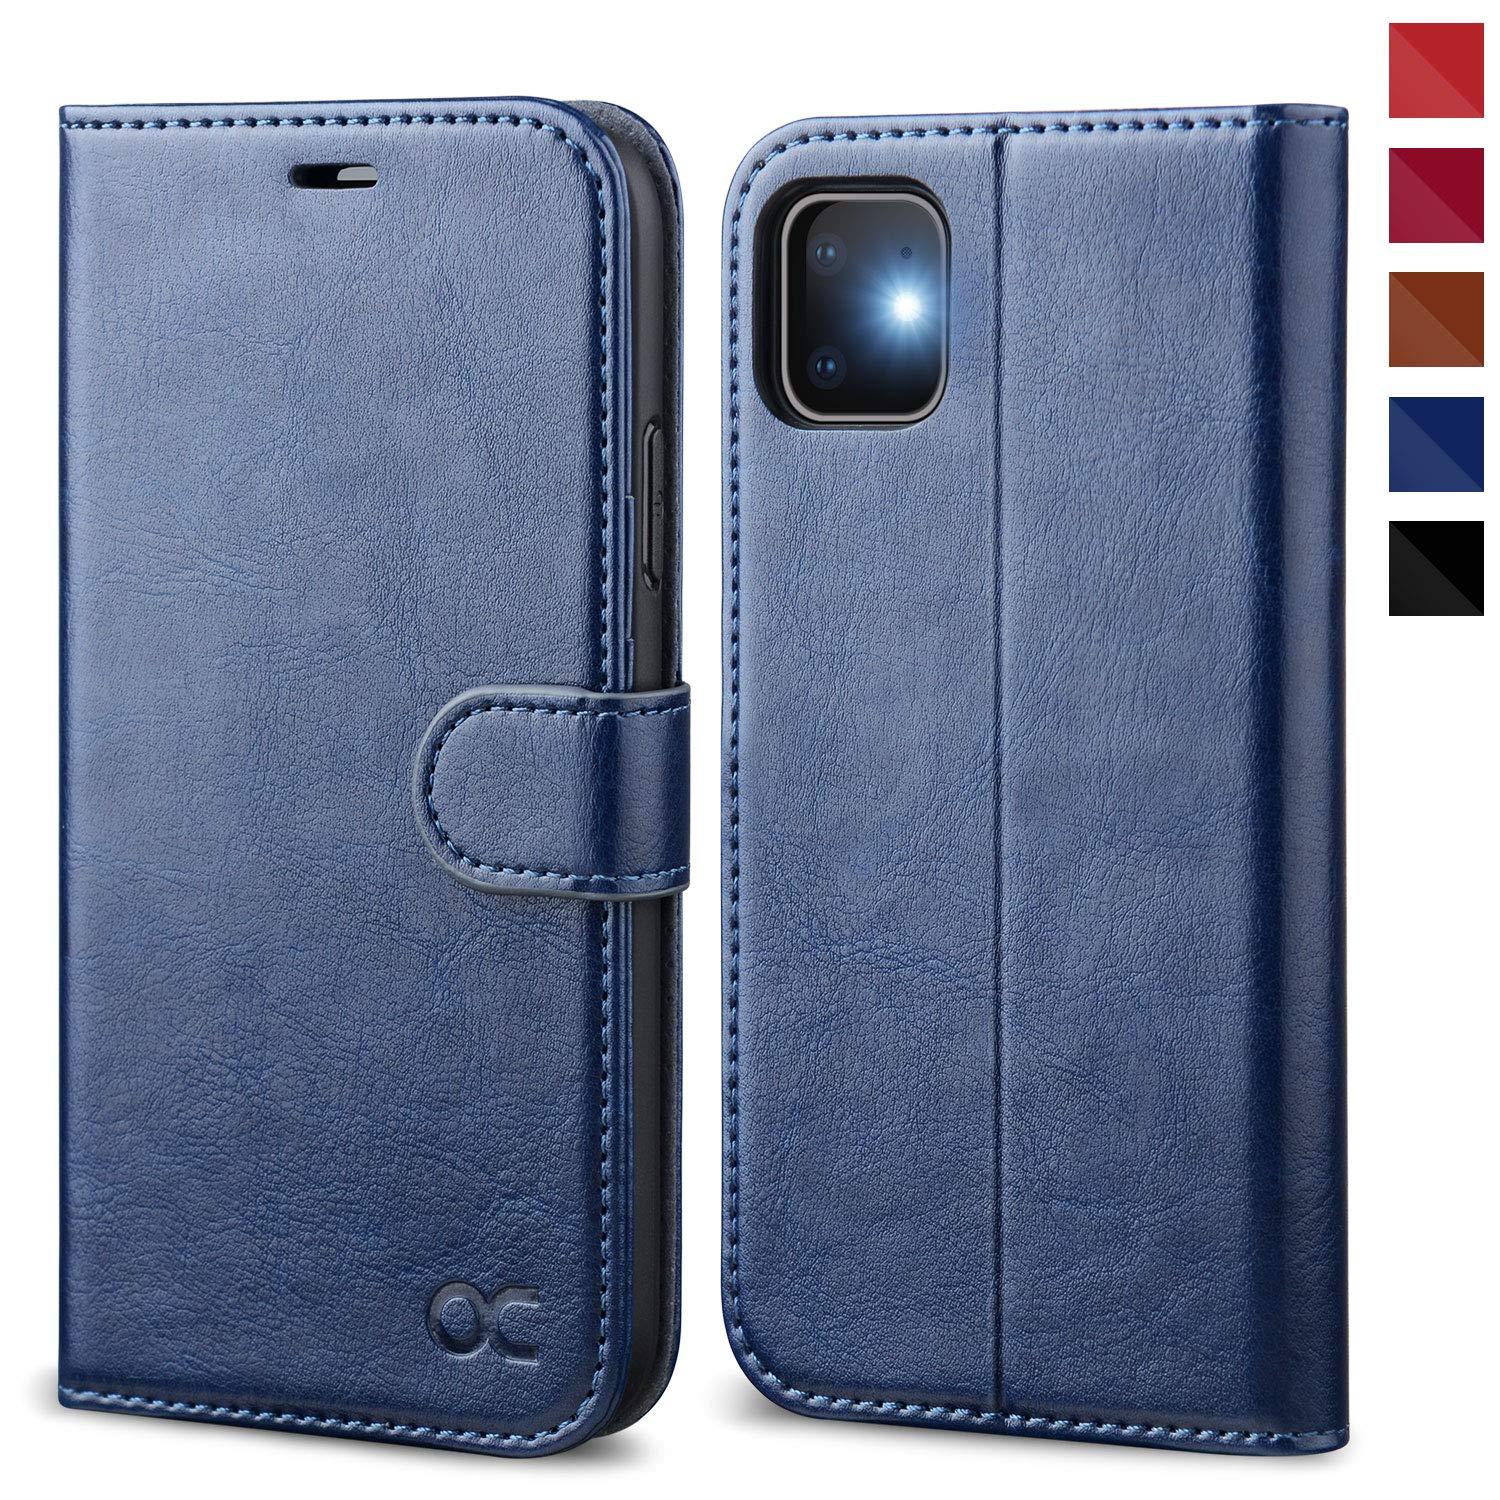 OCASE iPhone 11 Case, iPhone 11 Wallet Case with Card Holder, Leather Flip Case with Kickstand and Magnetic Closure, TPU Shockproof Interior Protective Cover for iPhone 11 6.1 Inch (Blue)